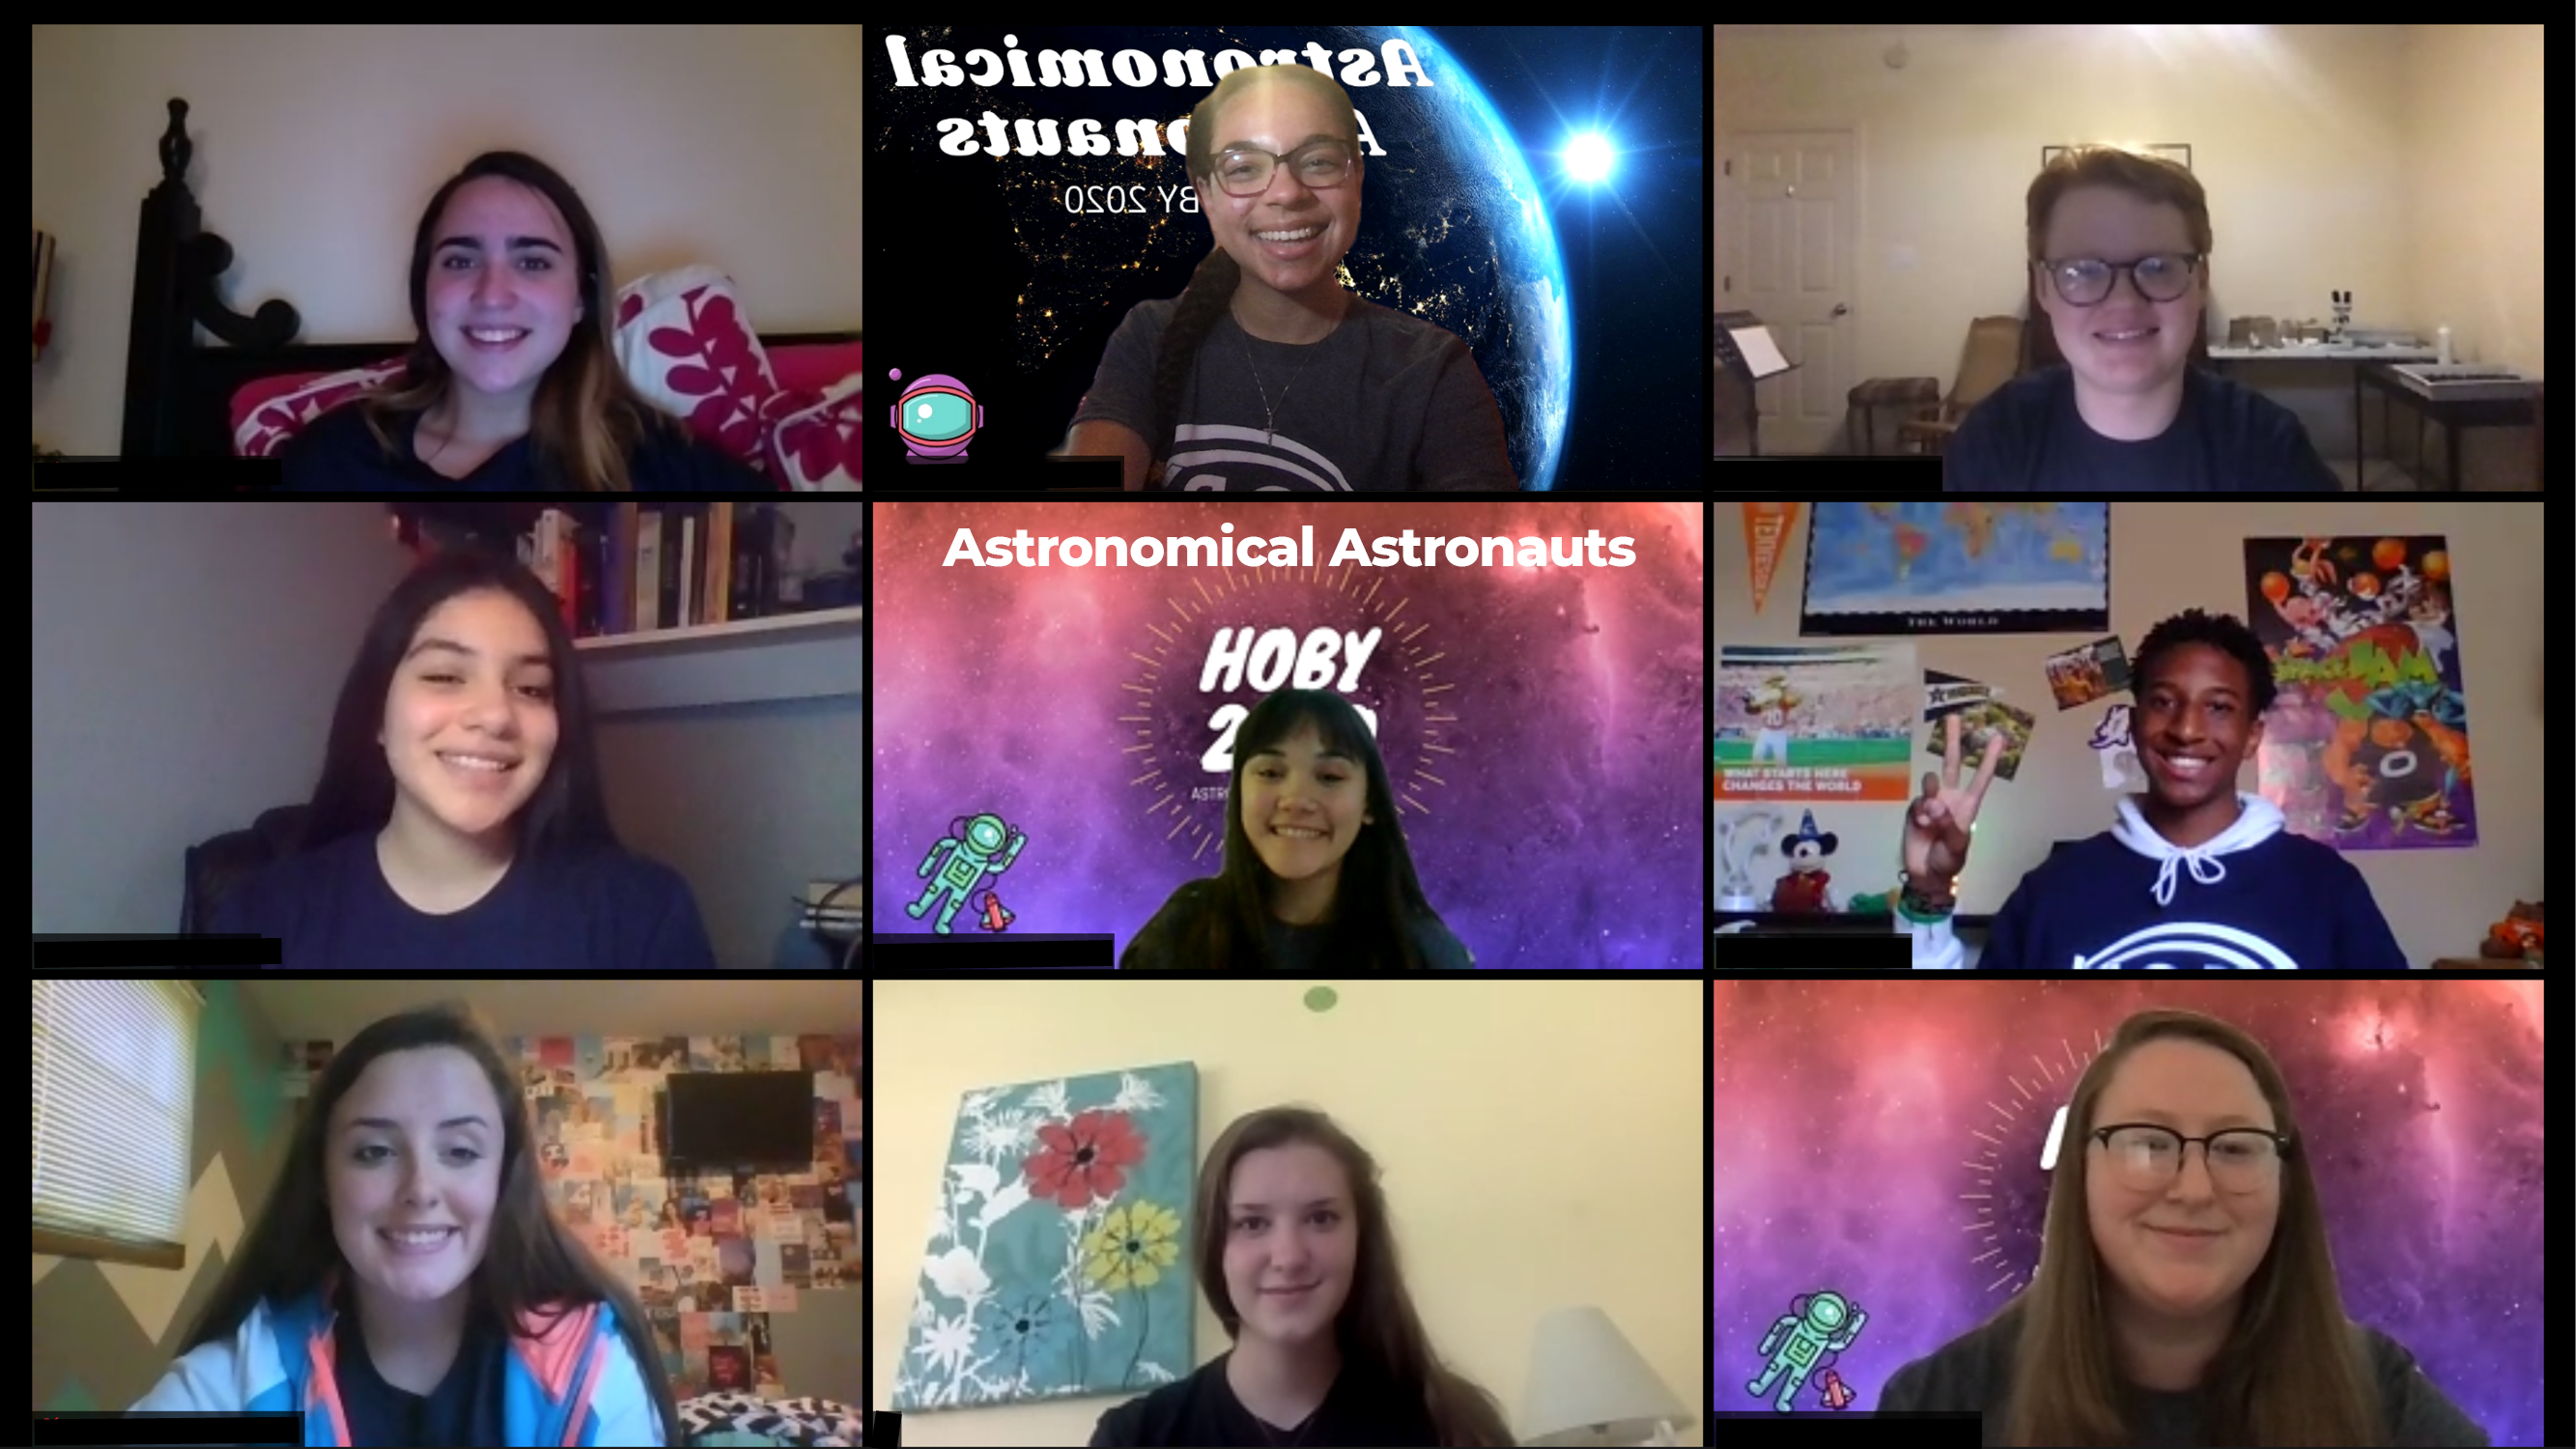 Astronomical Astronauts Group